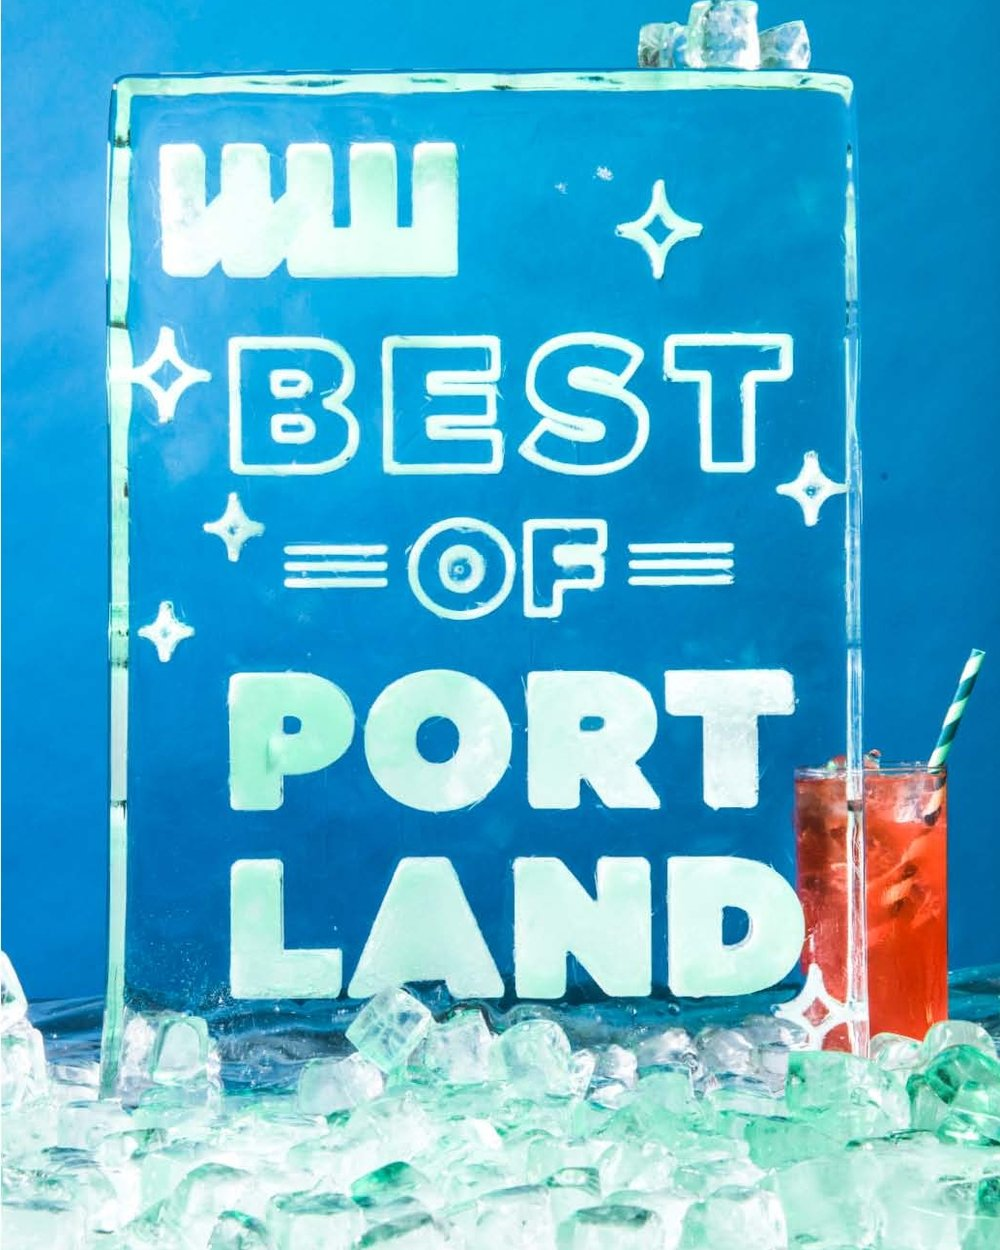 BEST OF PORTLAND - Our editorial team hand selects the best of the best, with features on unique and undiscovered people, places and things in Portland. We also publish the results of our BOP Readers' Poll, our readers' picks for the best businesses, services, and products in Portland.